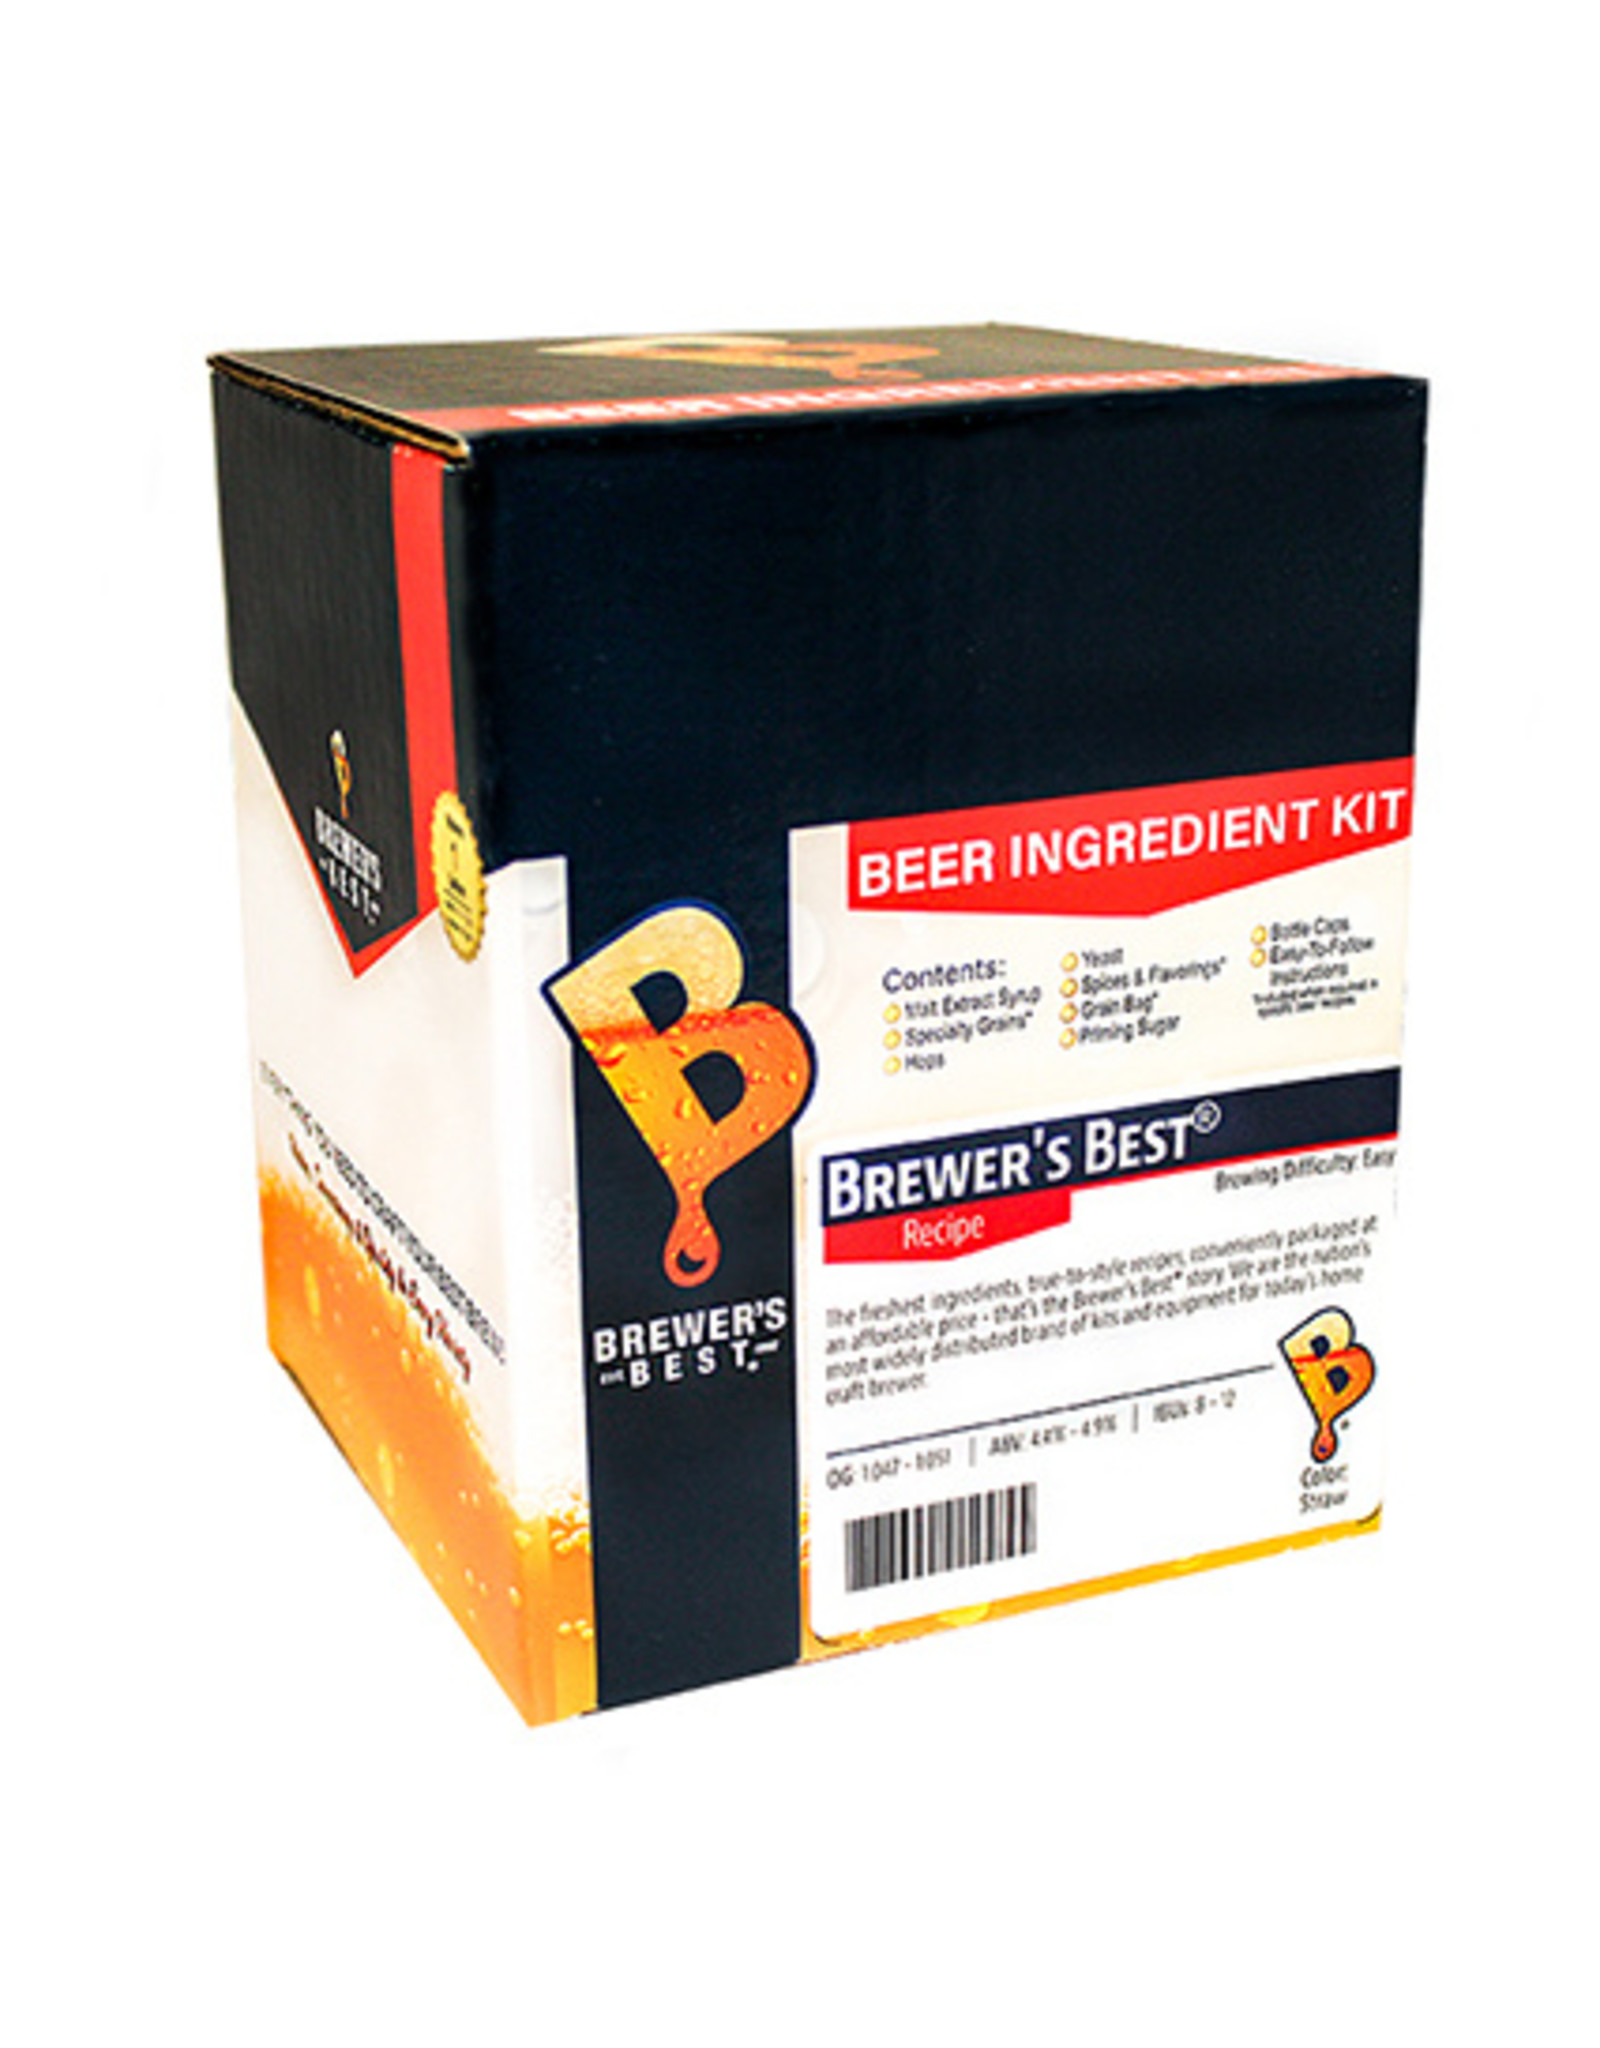 Brewers Best Brewer's Best 1 Gallon kit  - Imperial IPA